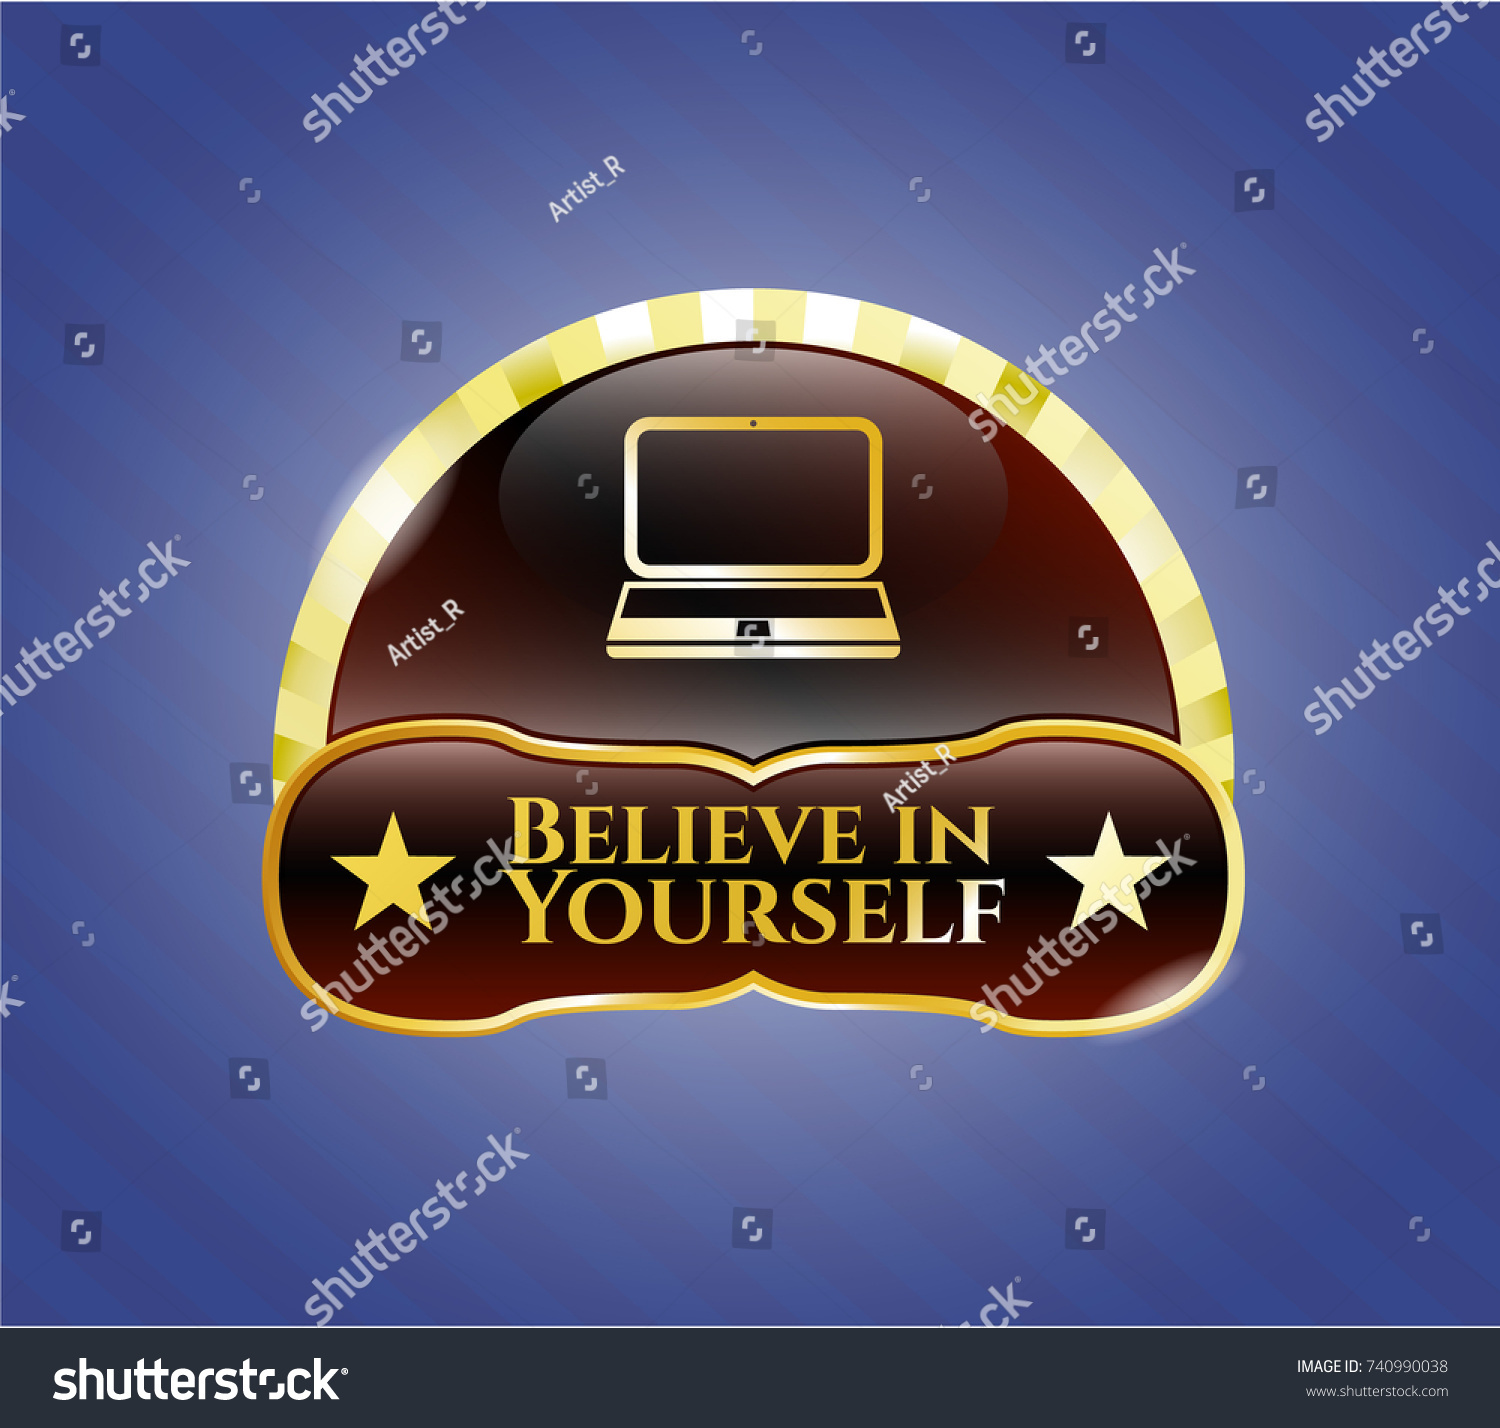 Golden badge laptop icon believe yourself stock vector 740990038 golden badge with laptop icon and believe in yourself text inside biocorpaavc Choice Image